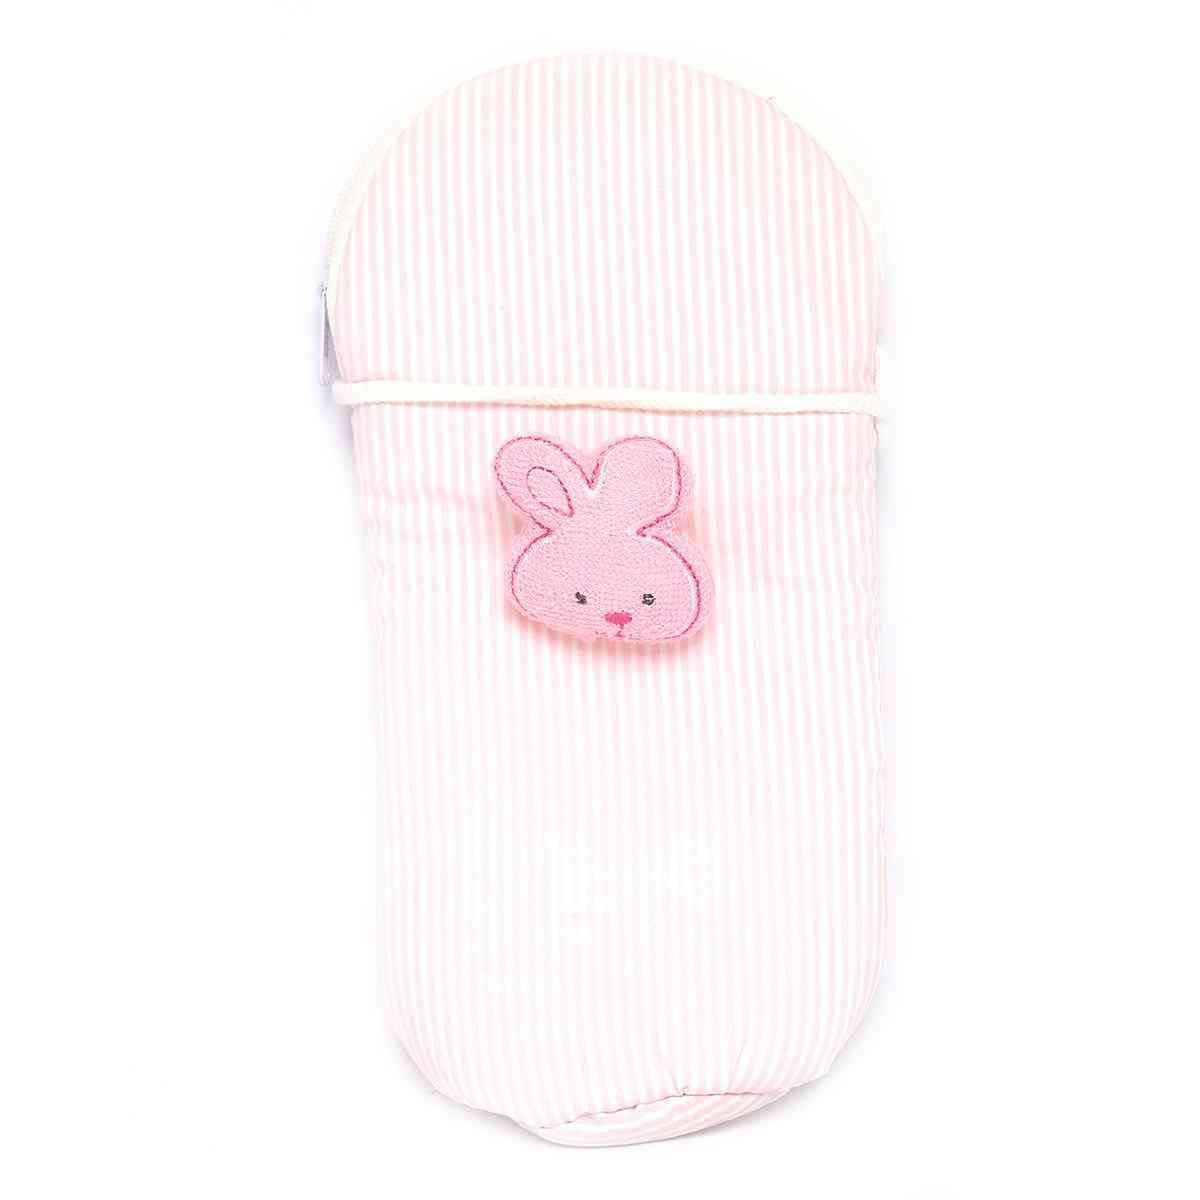 Vitamin Baby Cartoon Character 9x4 Inches Feeder Cover for Feeder Bottle with String  Pink